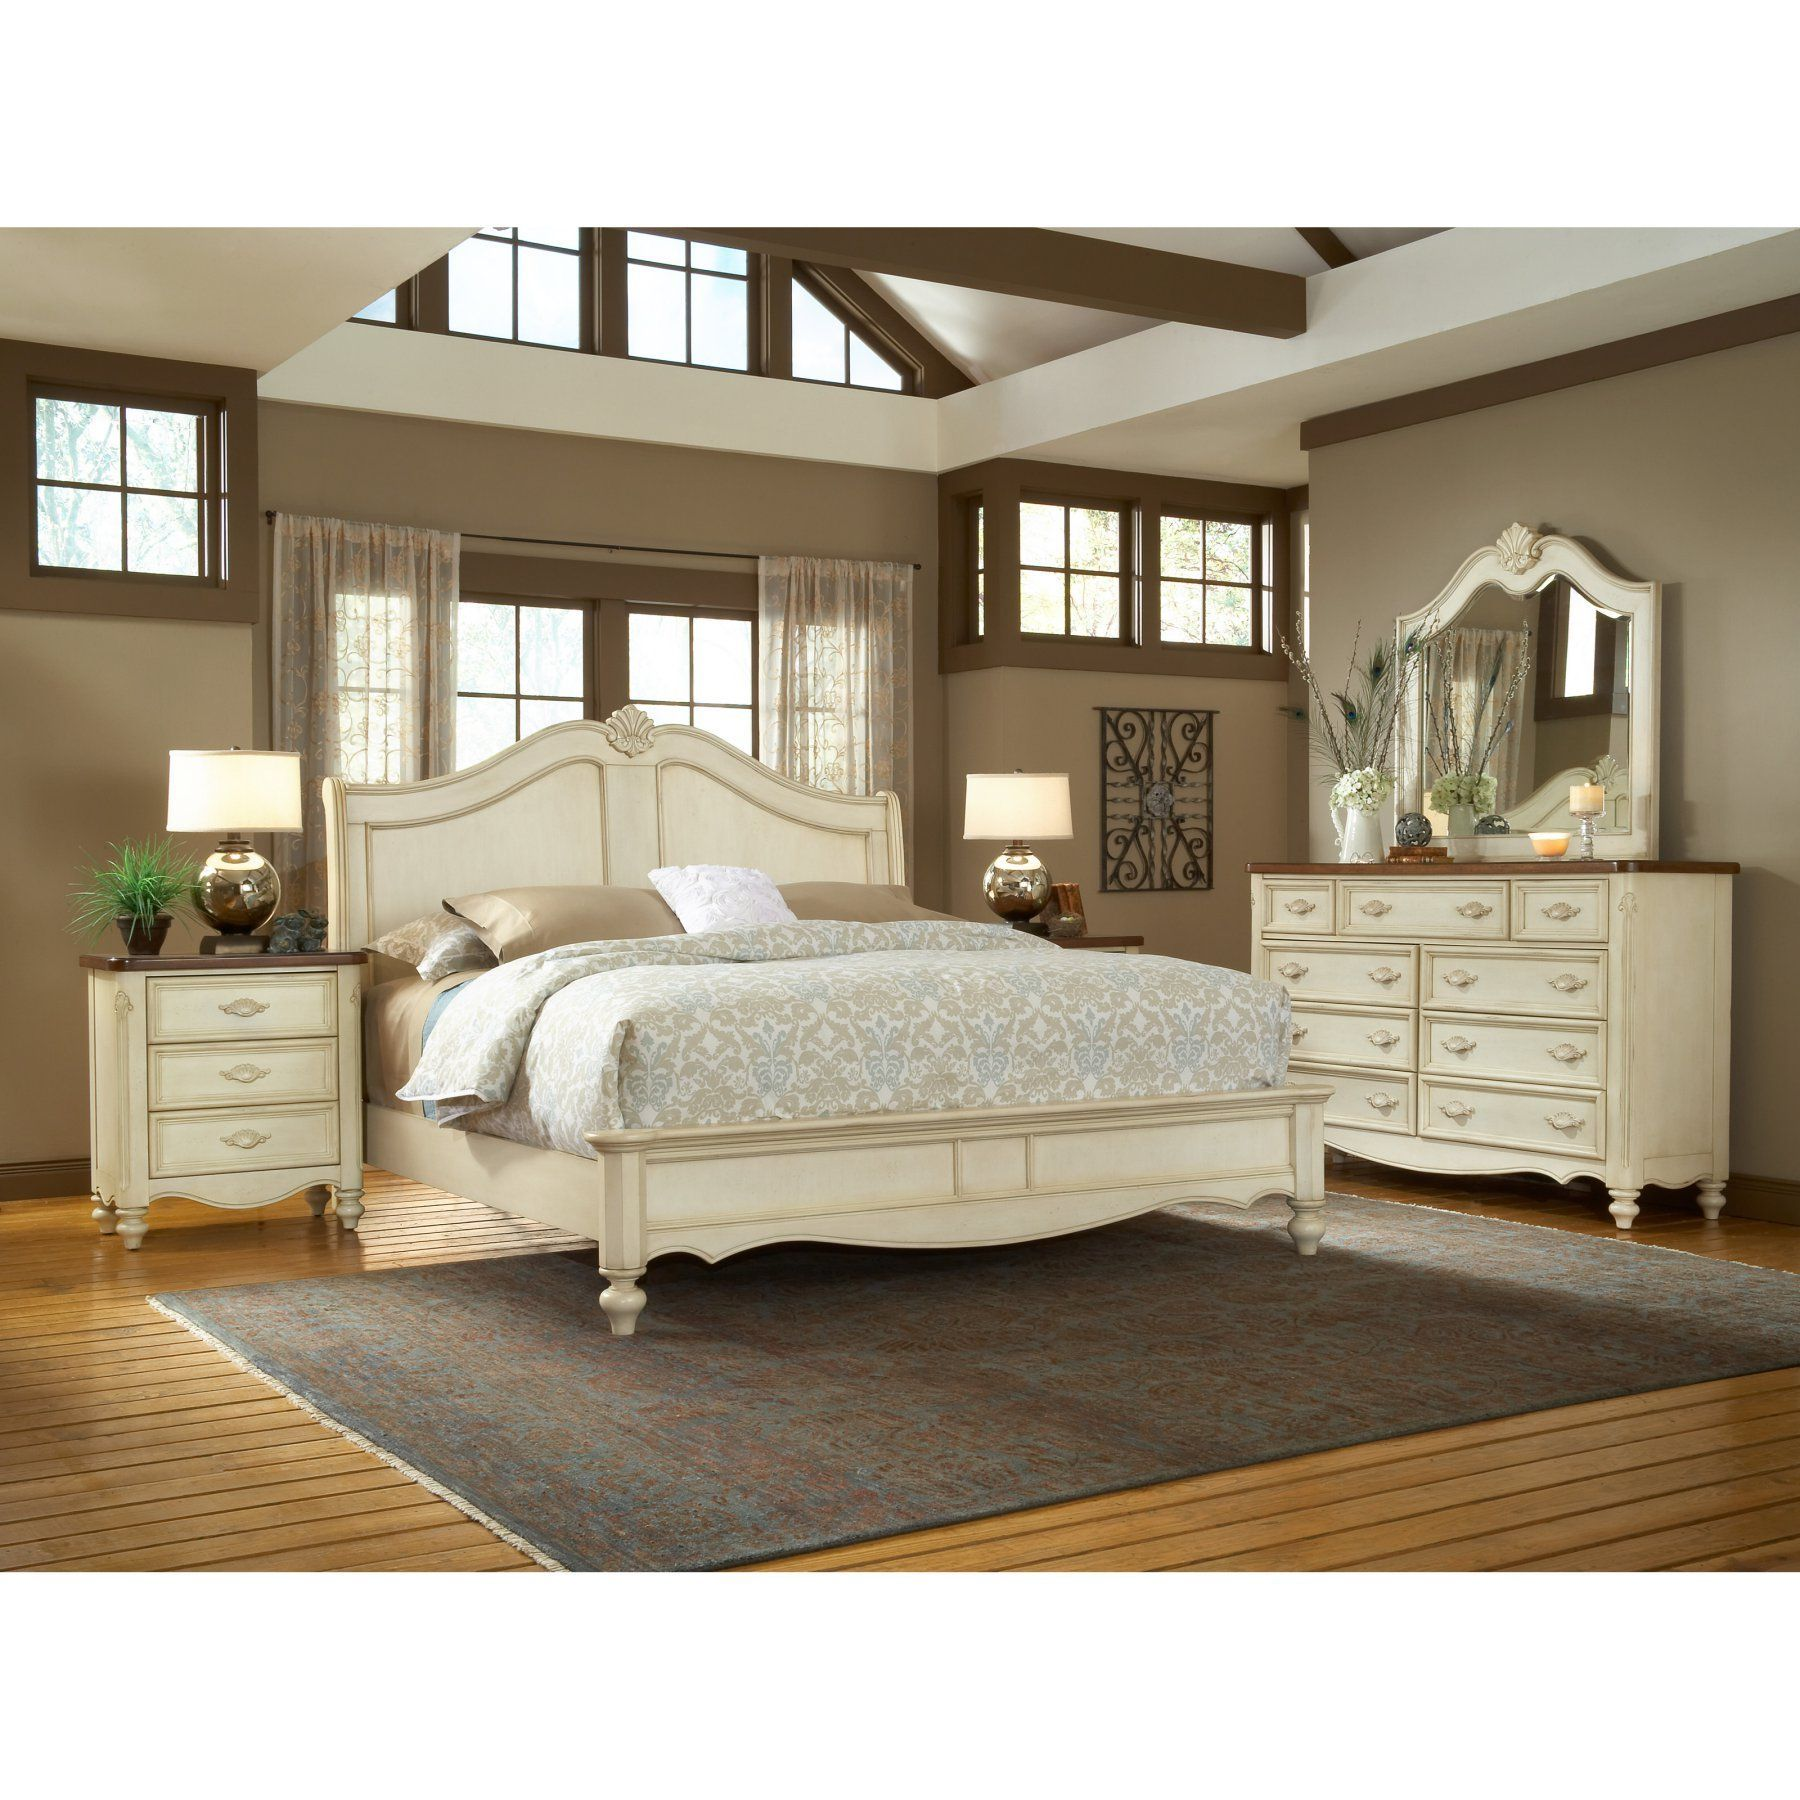 american woodcrafters chateau sleigh bed awr824 products rh pinterest com mx